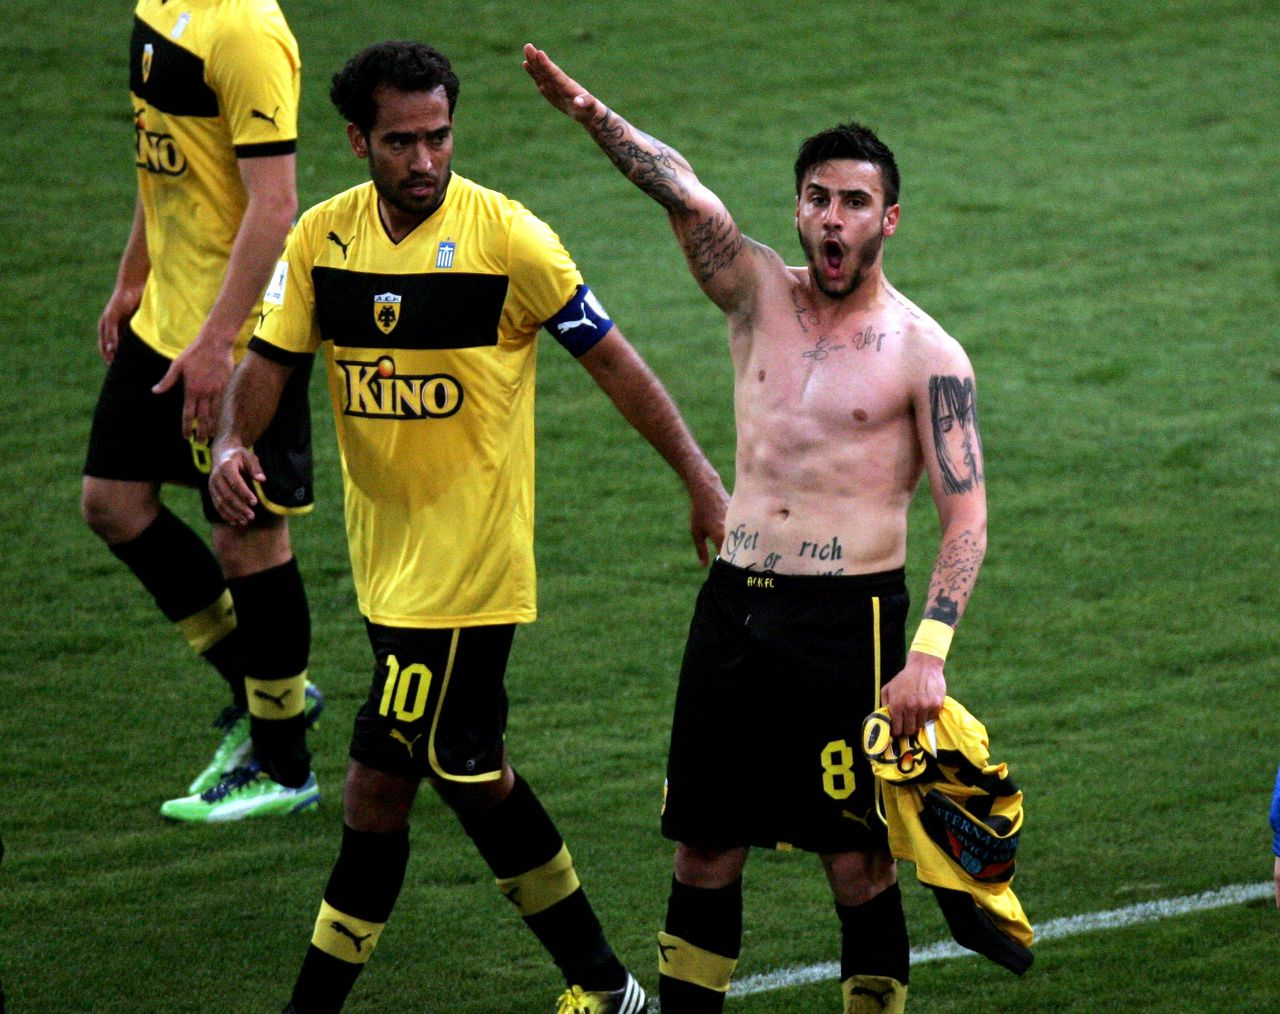 This picture taken on March 16, 2013 shows Giorgos Katidis (R) celebrating a goal with a Nazi salute during a Greek Superleague football game in Athens. Katidis on March 17, was banned for life from playing for Greece for having given a Nazi salute during a game. The Greek football federation unanimously decided the sanction following an extraordinary general meeting. AFP PHOTO / STR